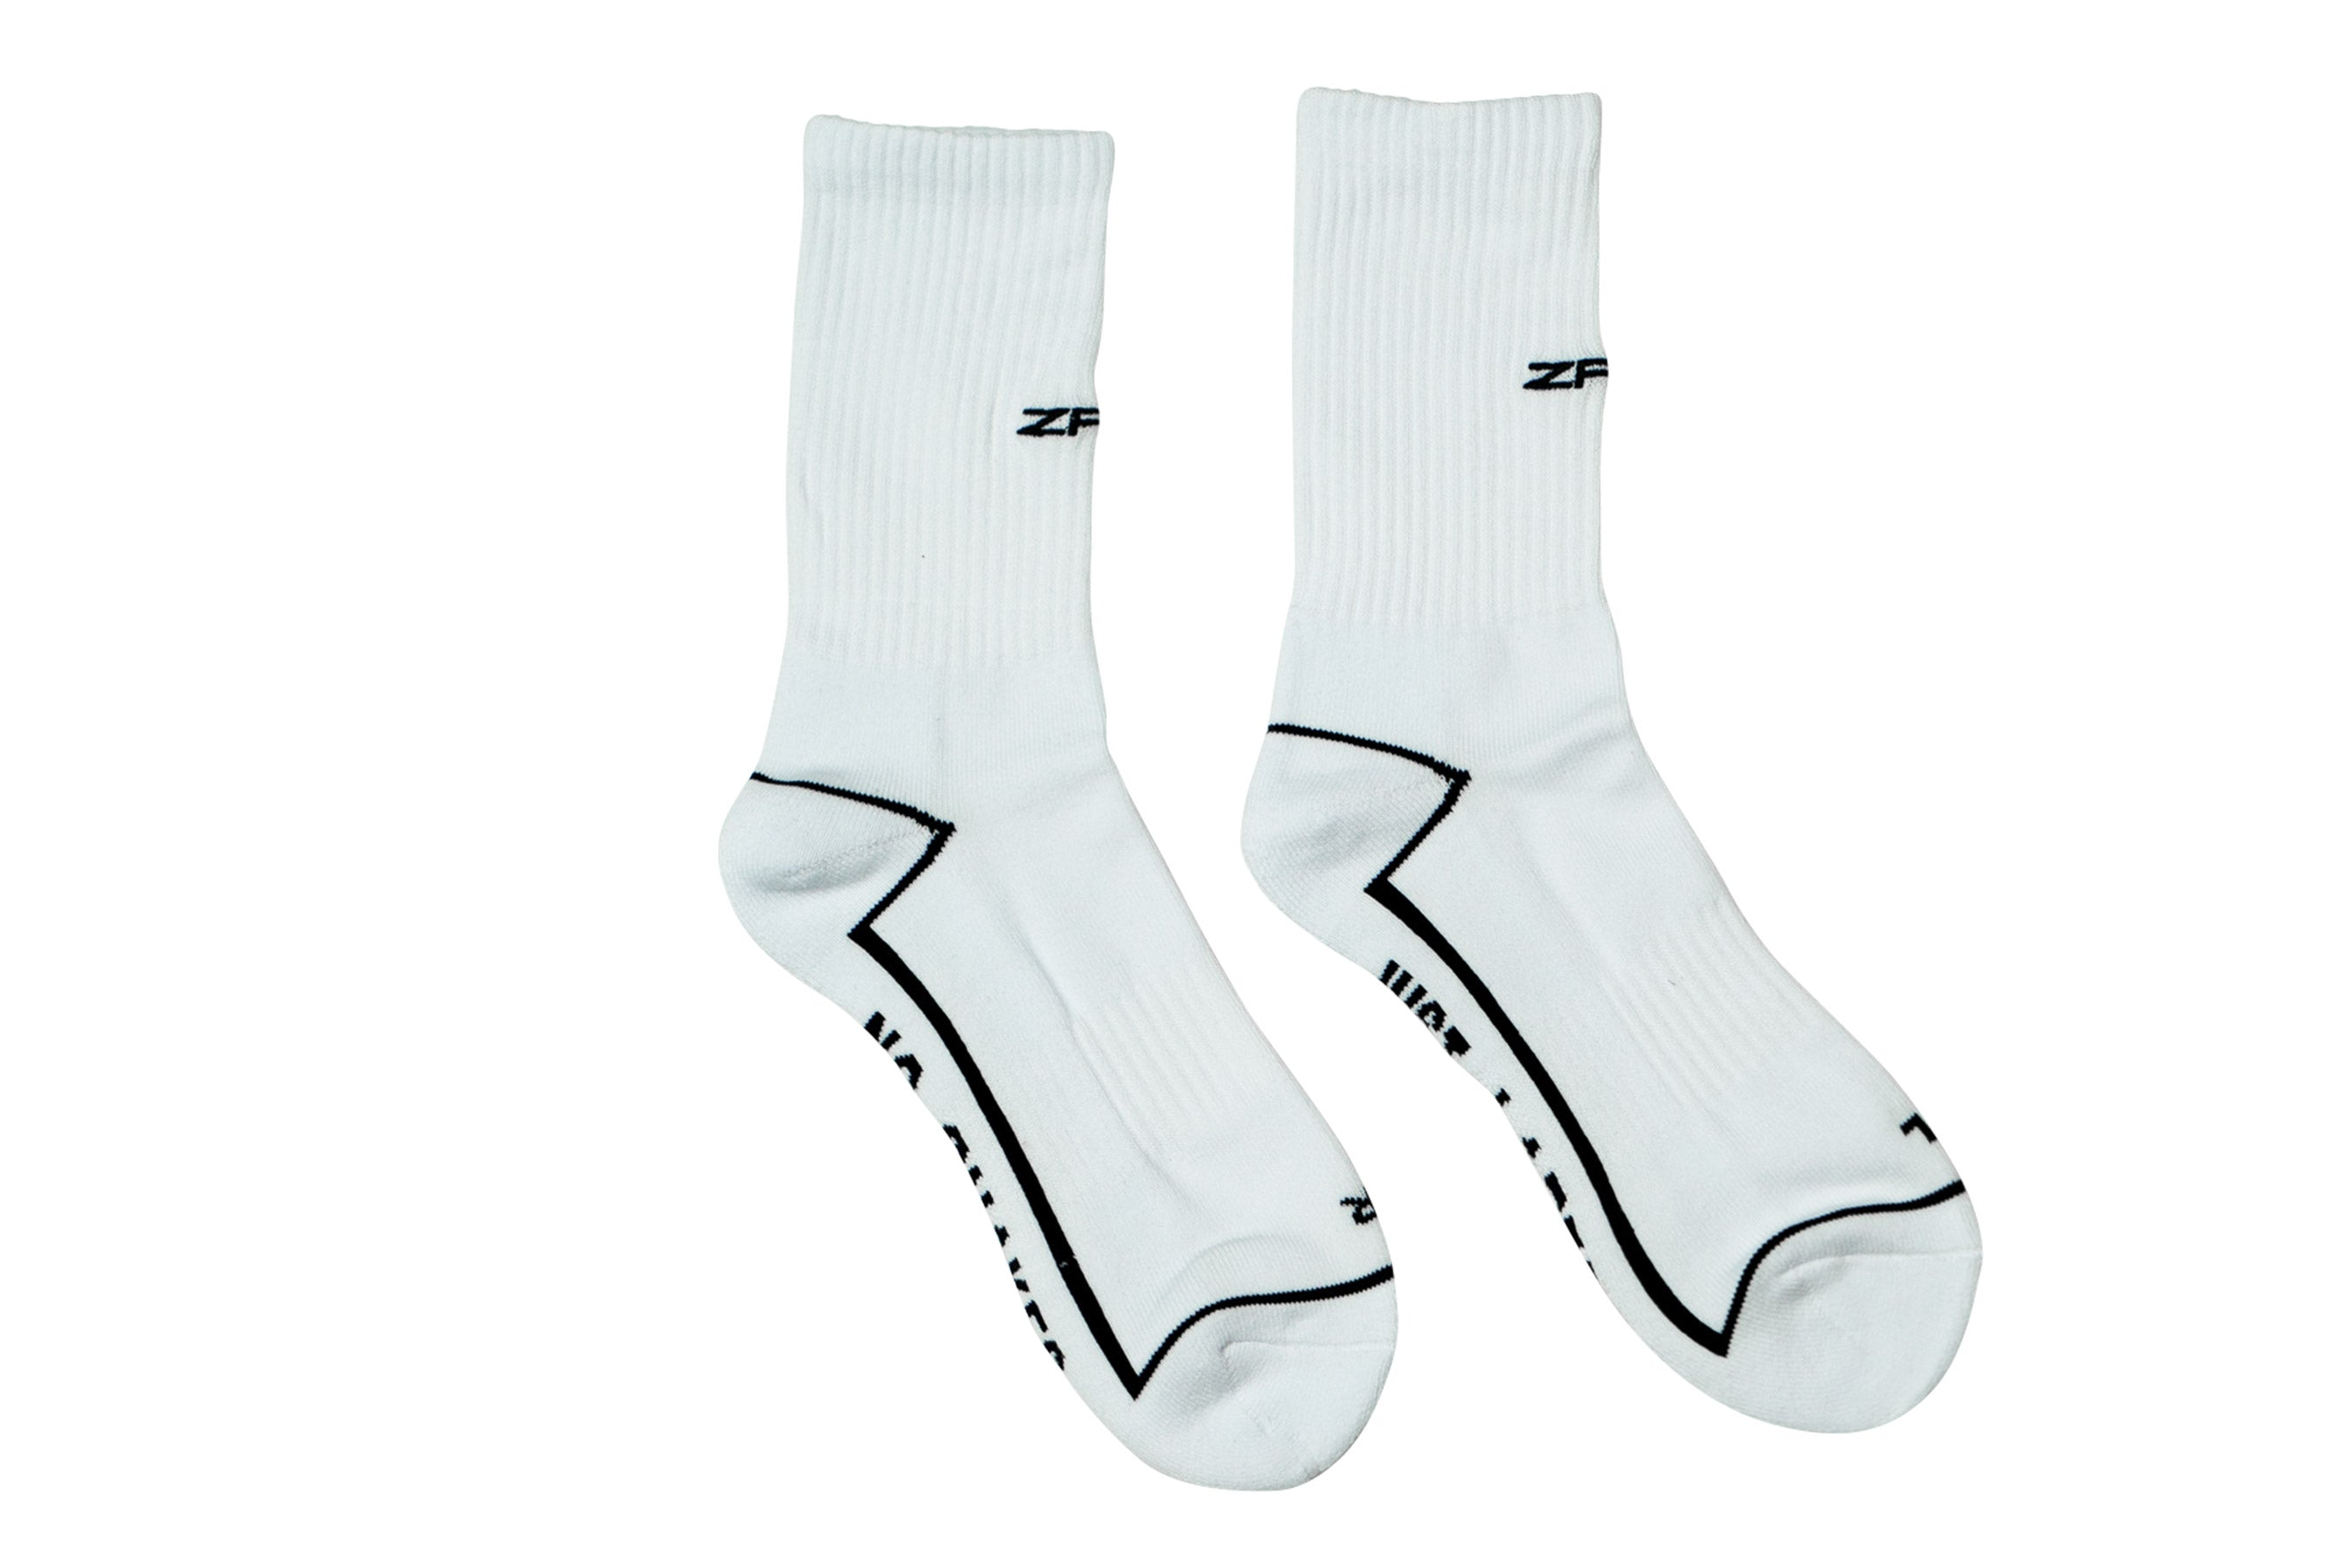 ZRK USB SOCKS // WHITE & BLACK